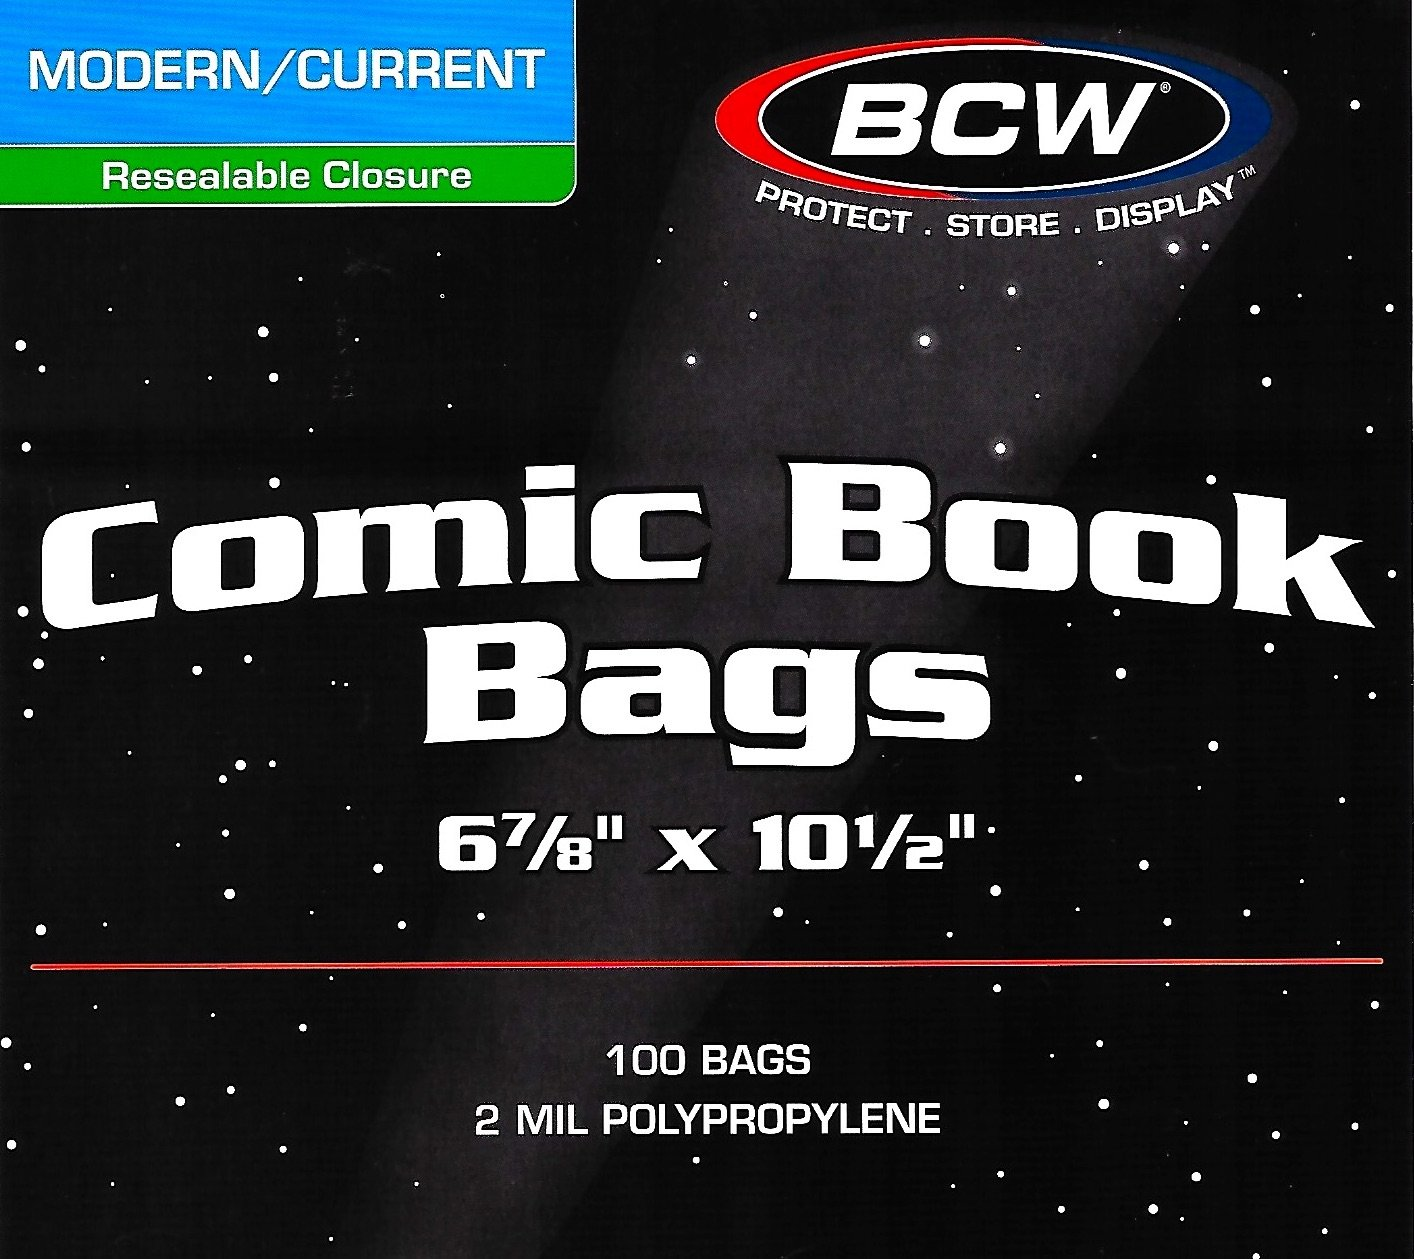 800 Current Modern Resealable Comic Bags and Backing Boards by BCW